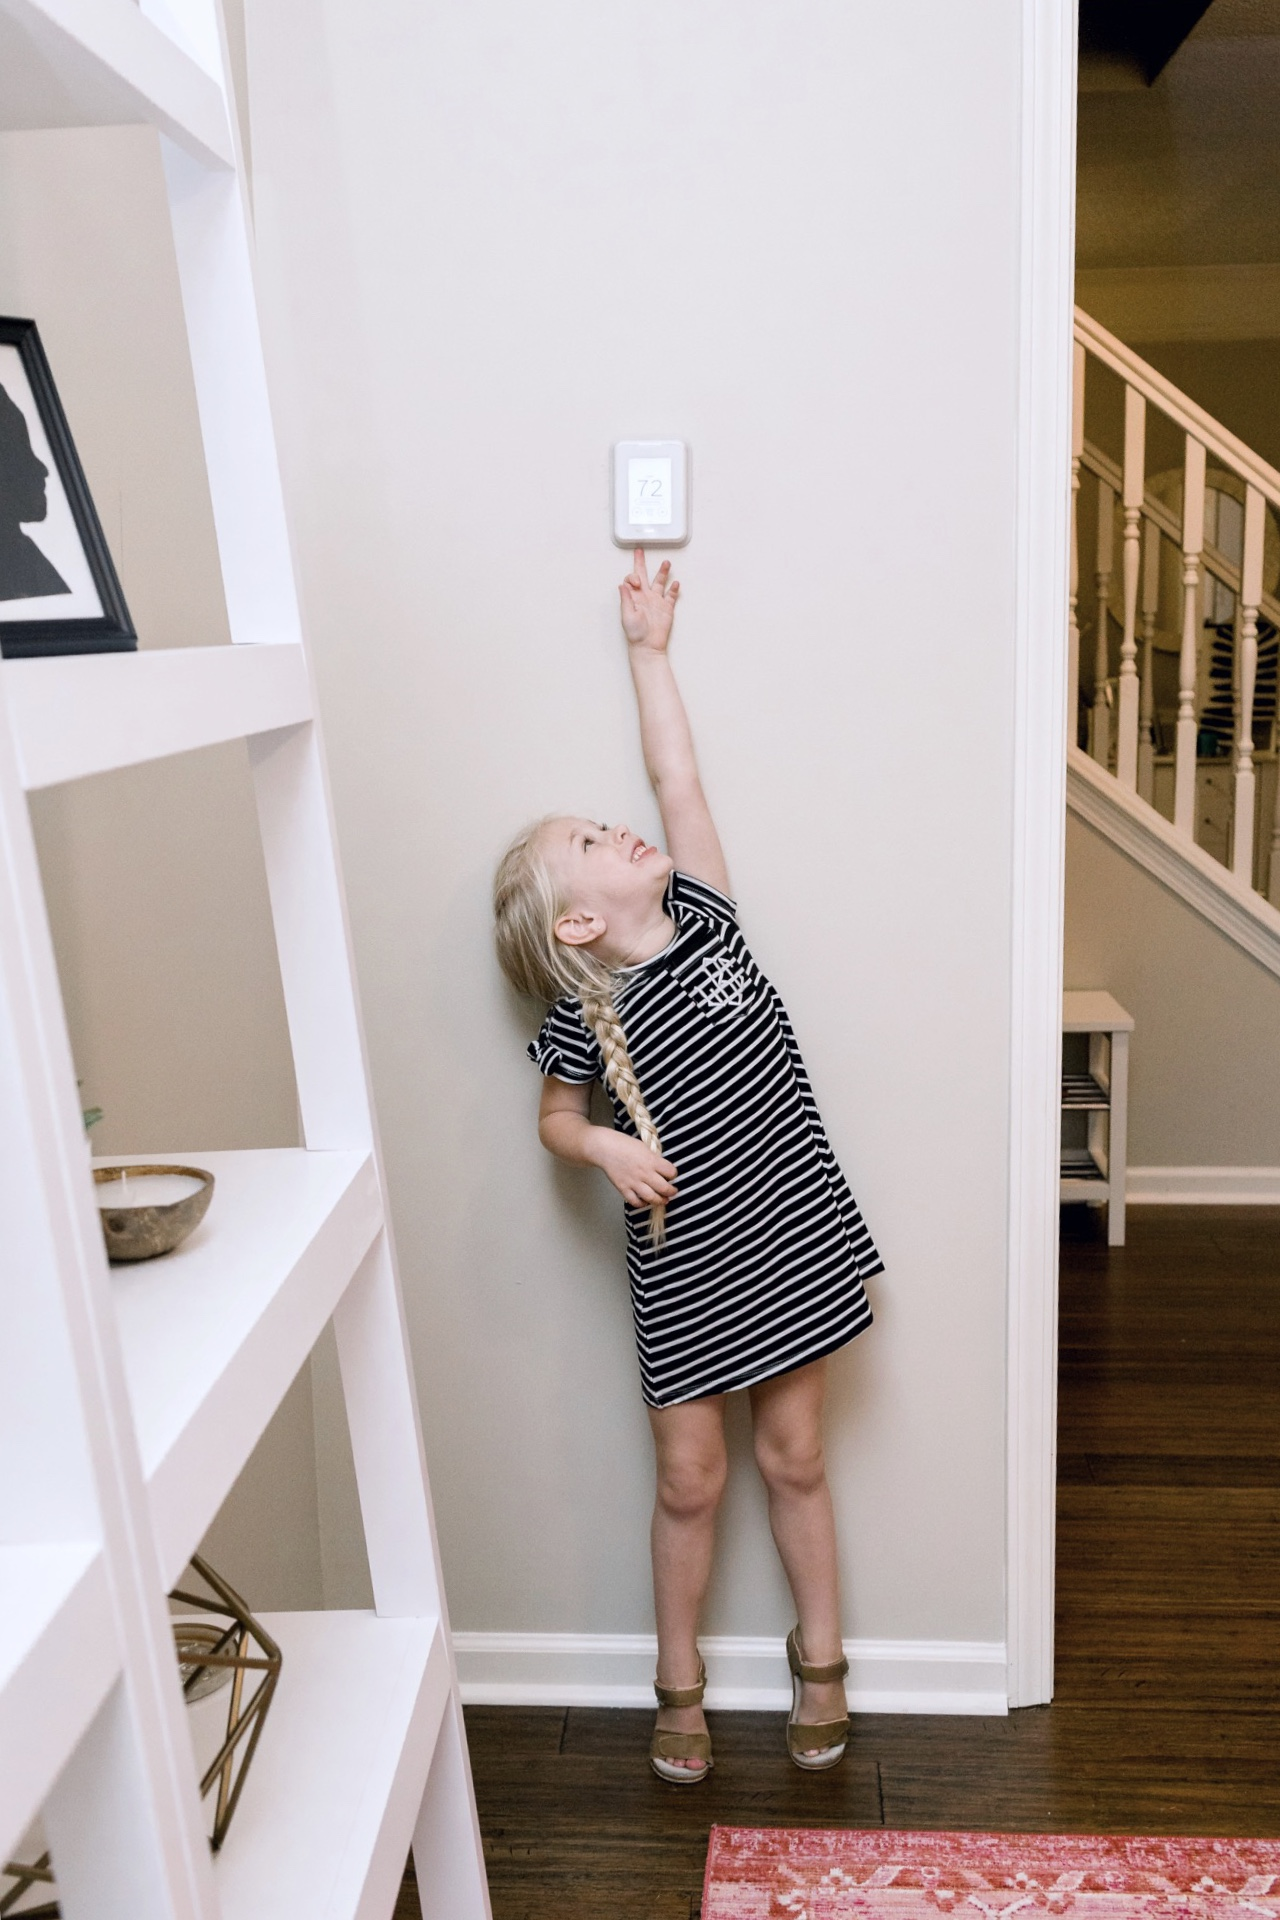 Benefits of a smart thermostat in your home featured by top US lifestyle blog, Walking in Memphis in High Heels: image of the Honeywell Home T9 Smart Thermostat review